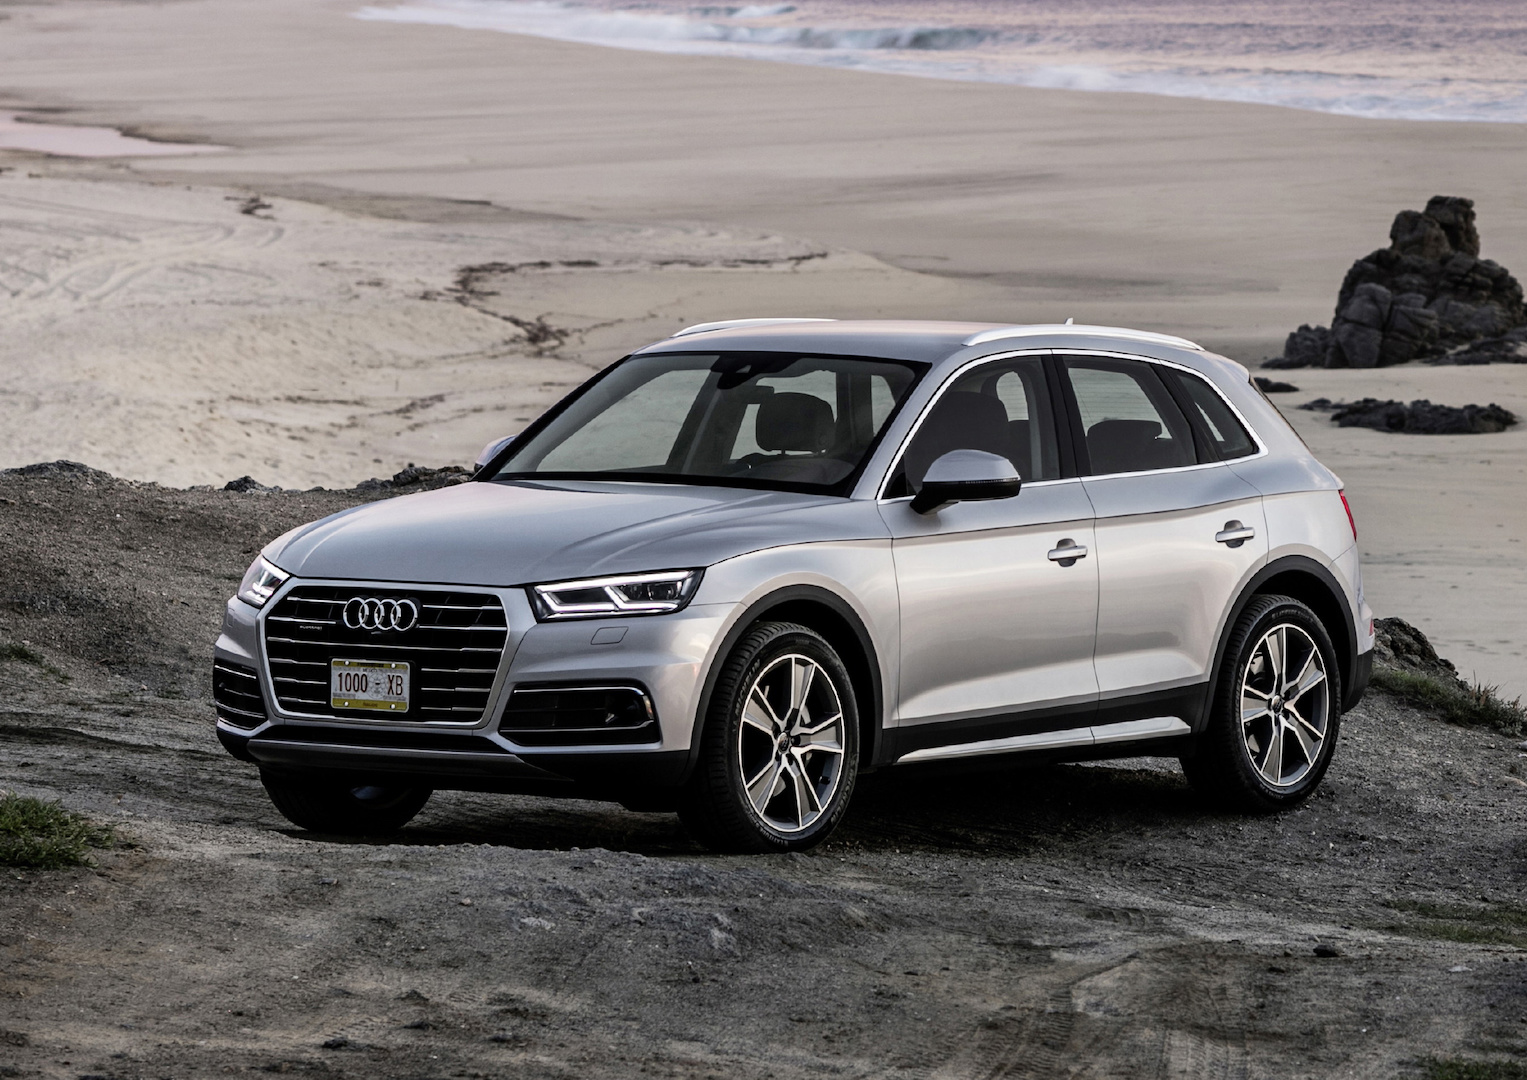 New Audi Q5 (2017) review: A small SUV that's big on tech